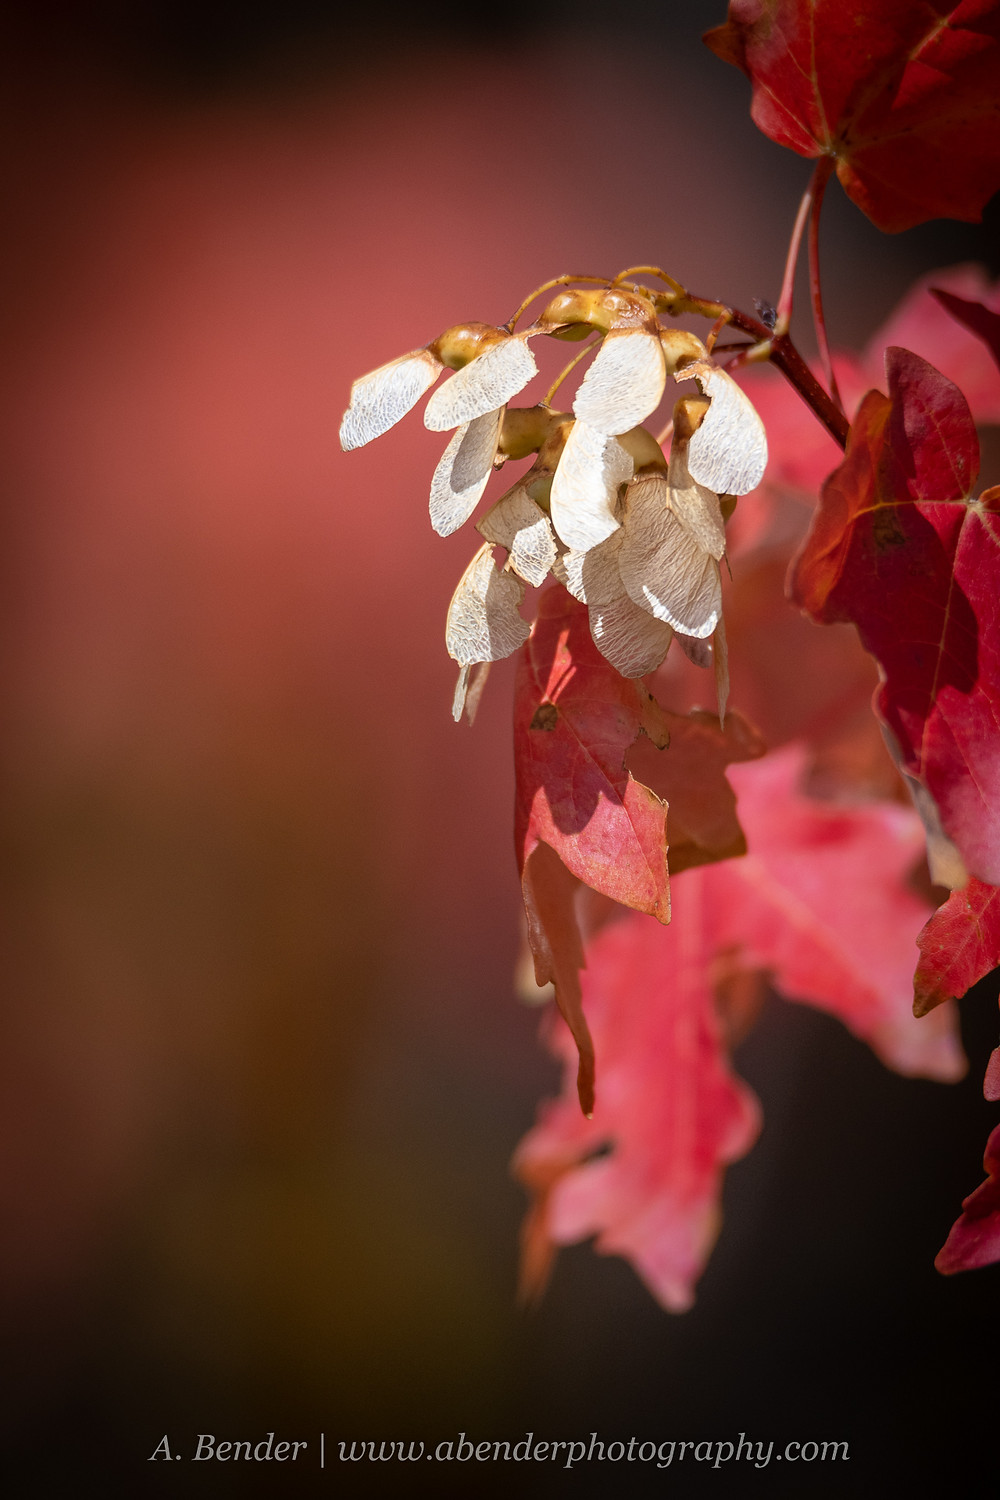 Red maple leaves with white maple seeds with wings hanging from the tip of a branch against a dark background with soft red bokeh Wasatch Mountains Utah autumn 2021 fall foliage | A Bender Photography LLC